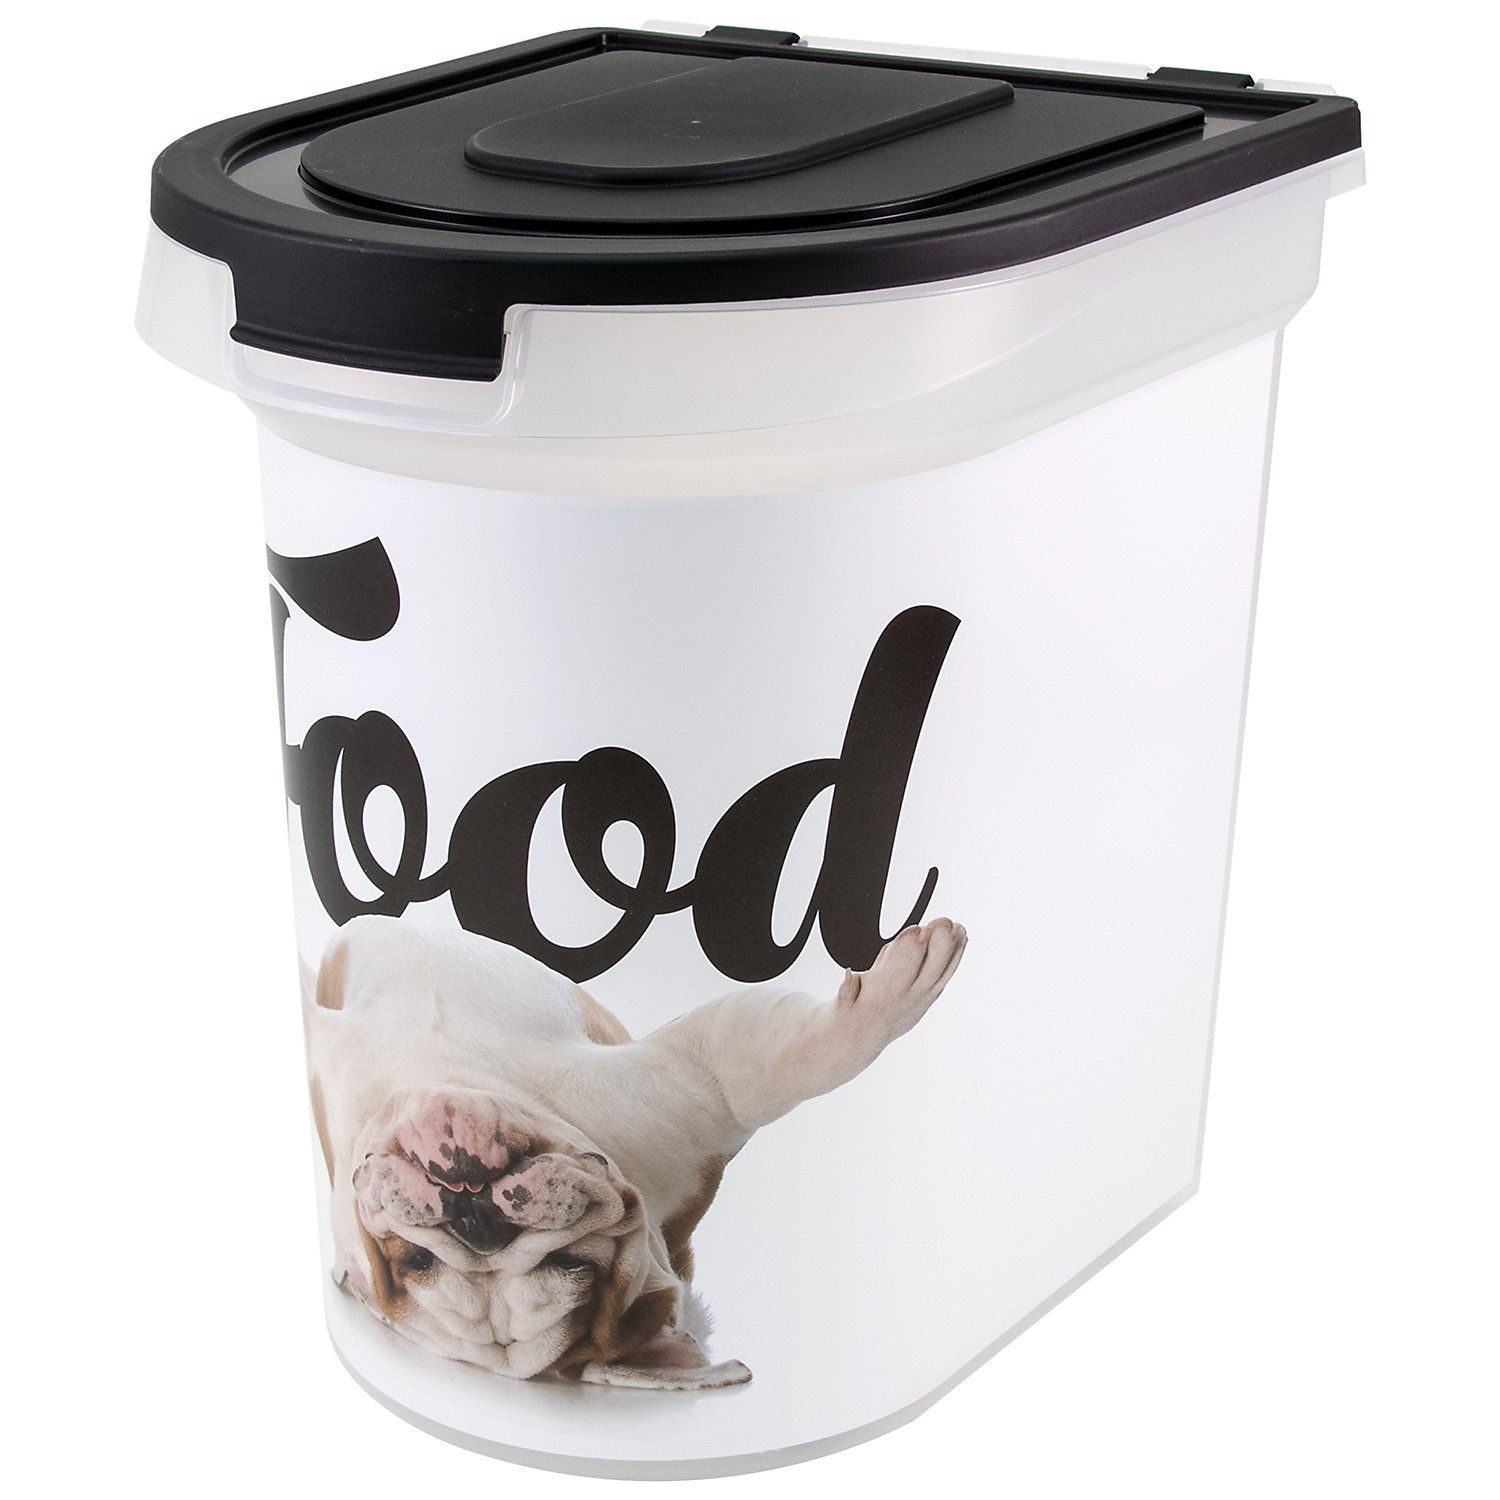 Paw Prints Food Bin Bulldog 26 Lbs Capacity Large Pet Food